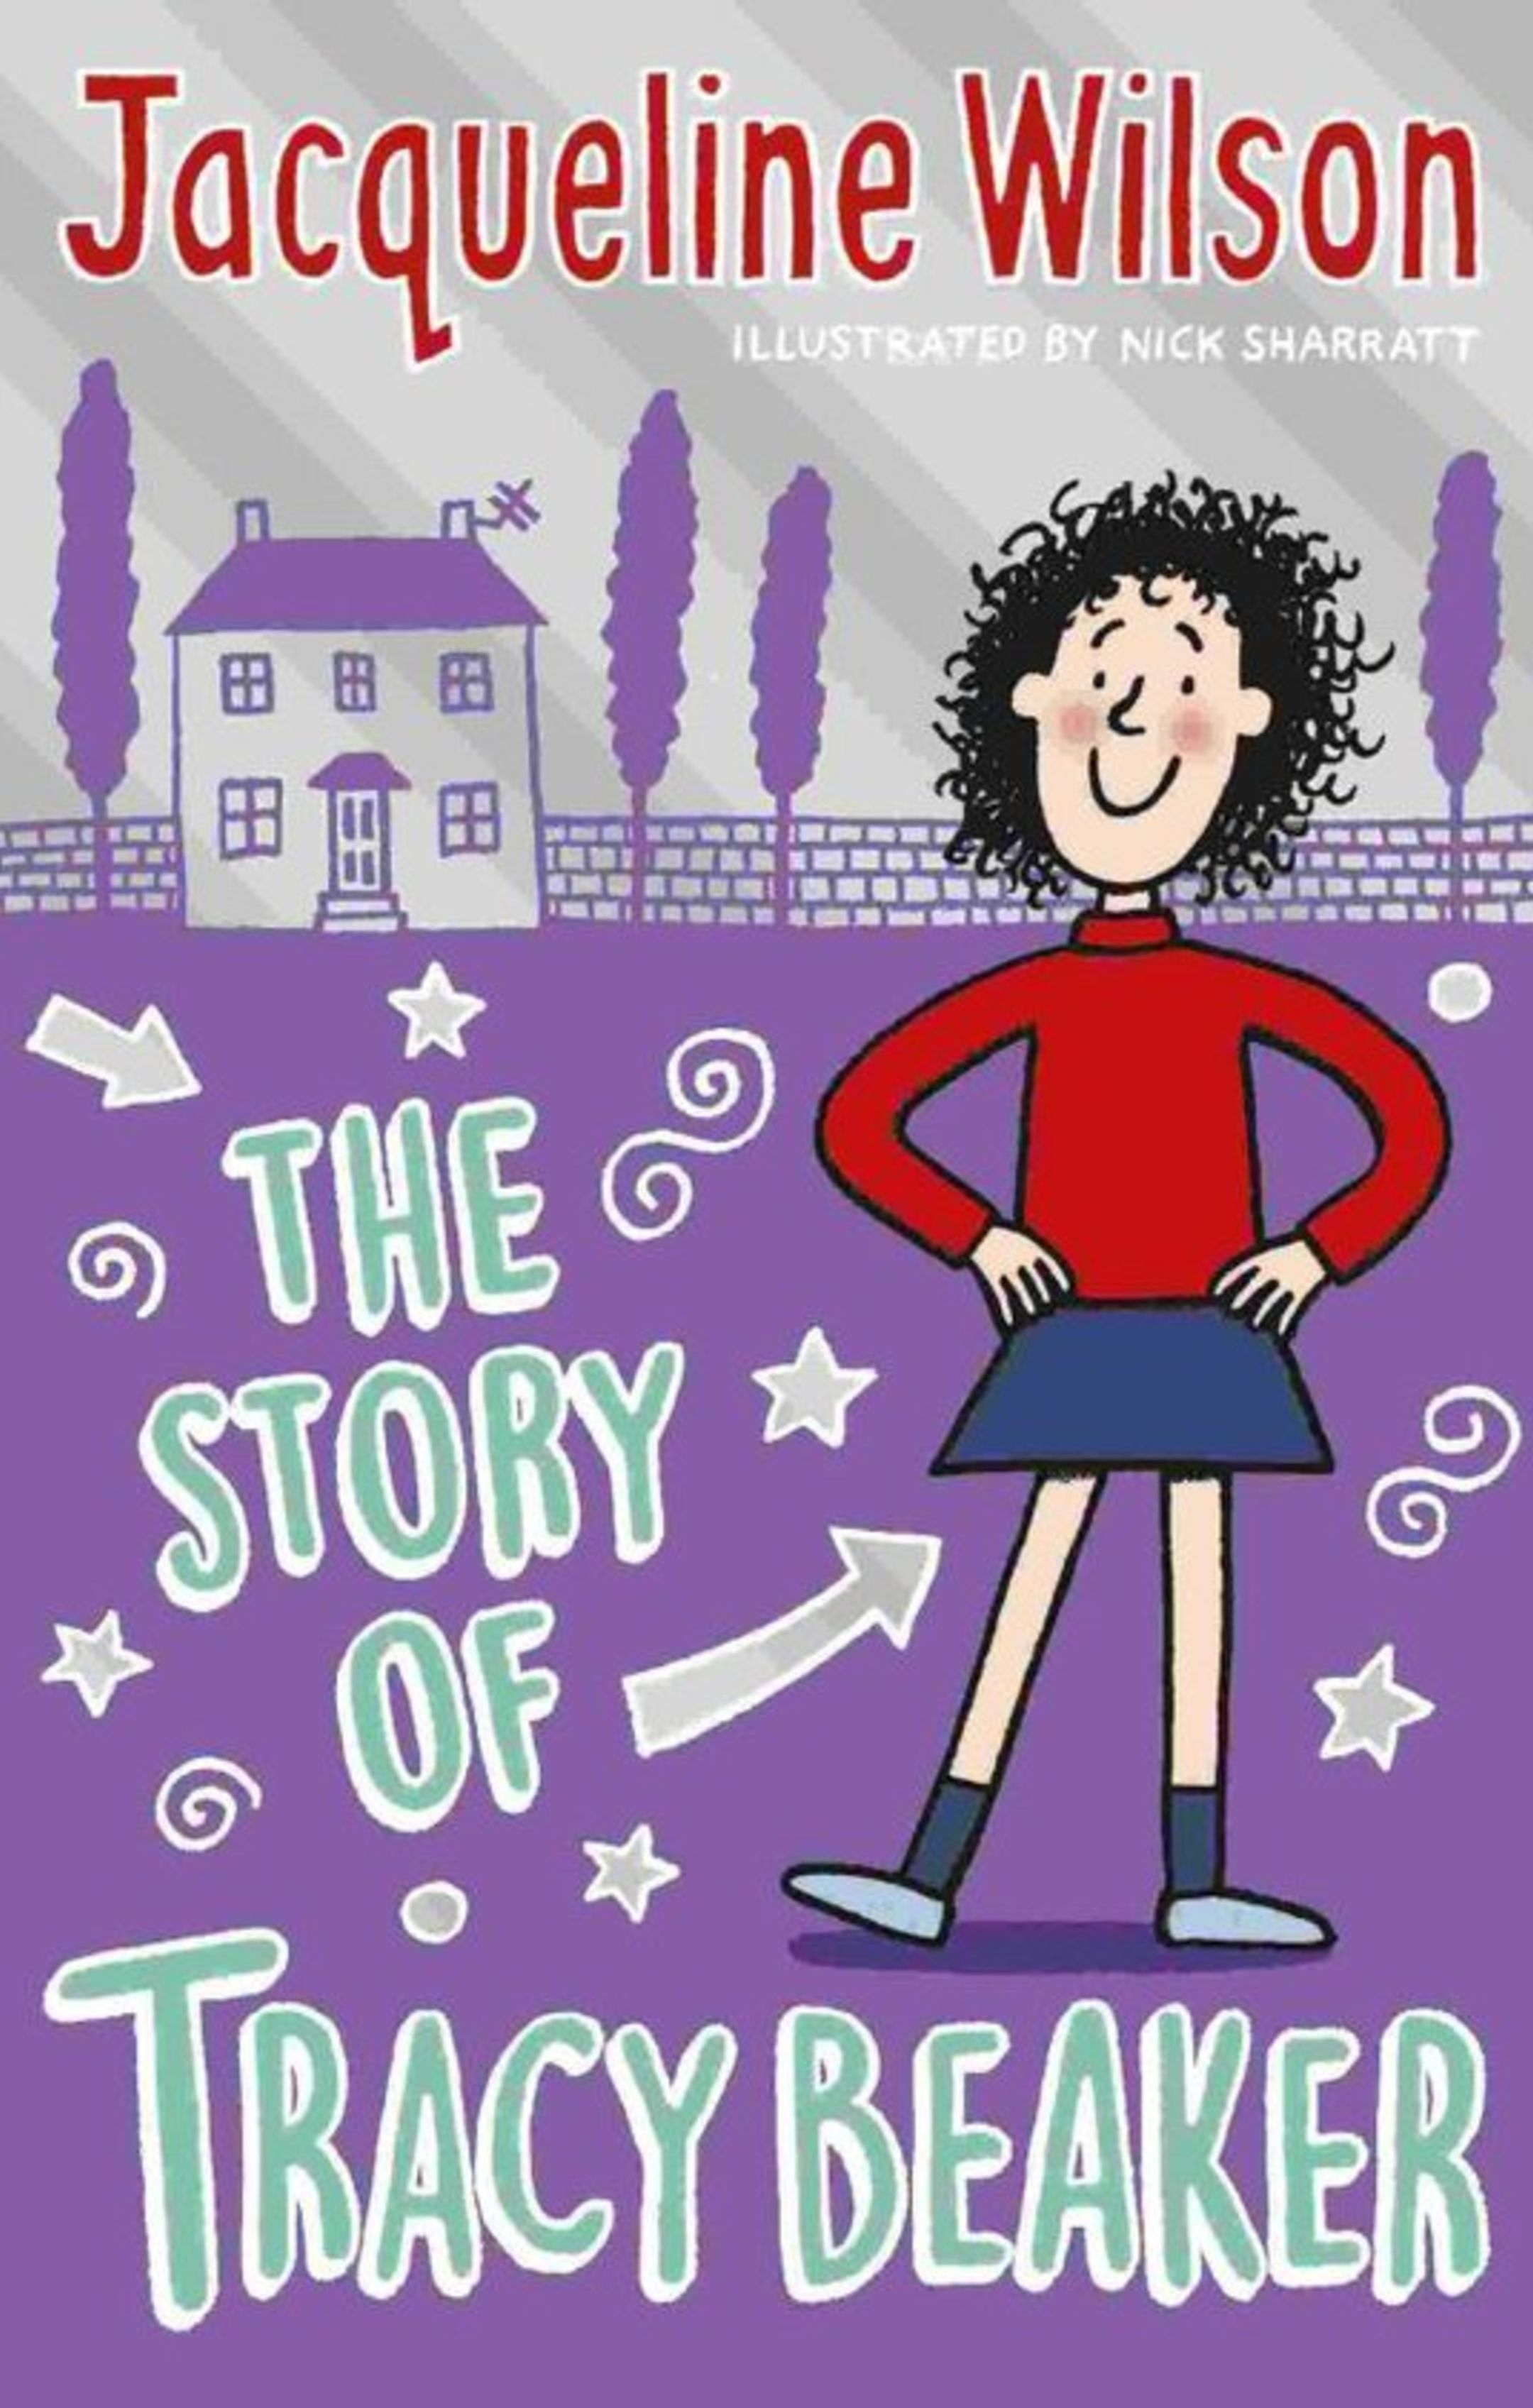 The book cover of The Story of Tracy Beaker, by Jacqueline Wilson